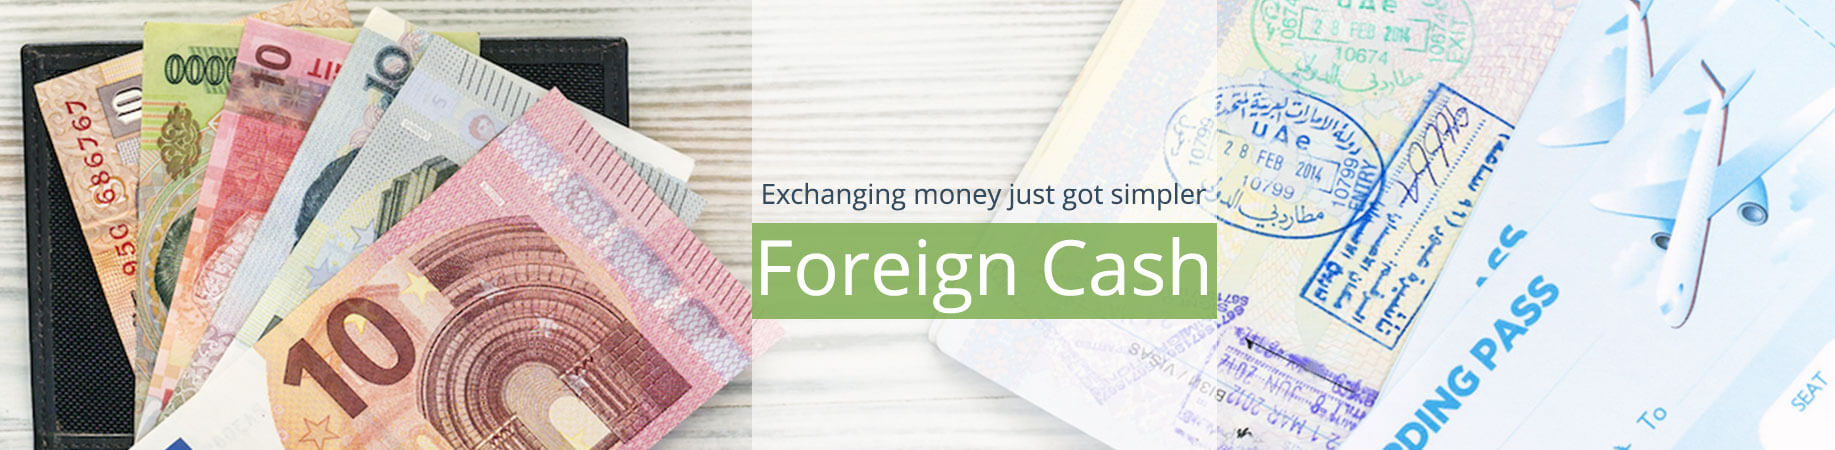 Foreign cash slider